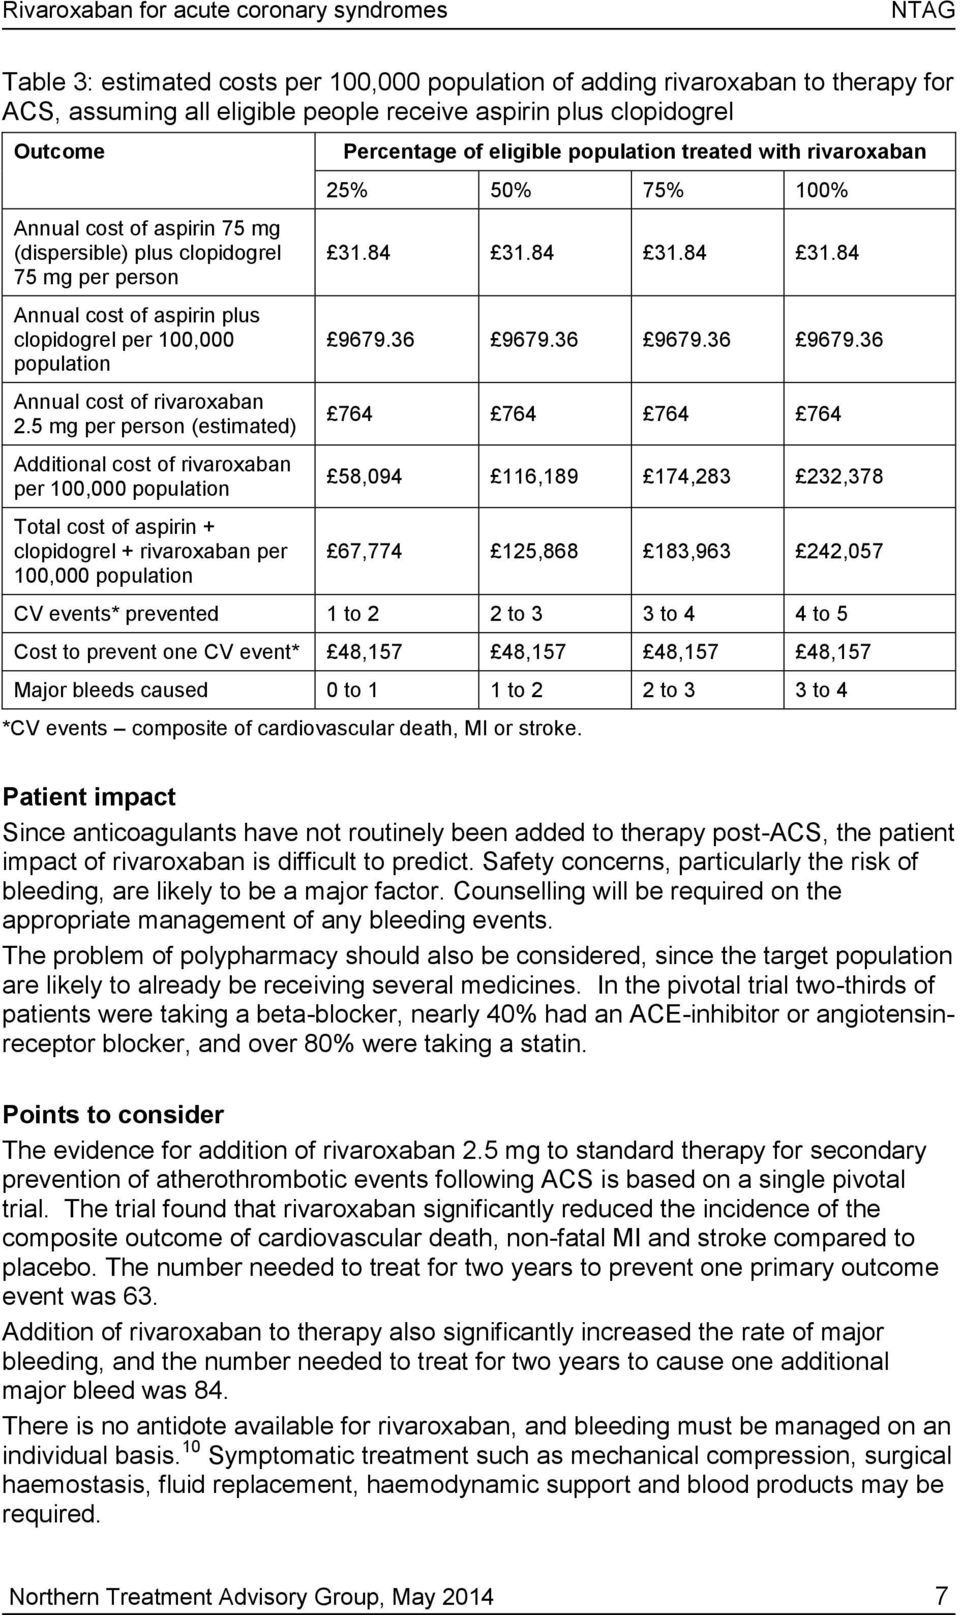 5 mg per person (estimated) Additional cost of rivaroxaban per 100,000 population Total cost of aspirin + clopidogrel + rivaroxaban per 100,000 population Percentage of eligible population treated